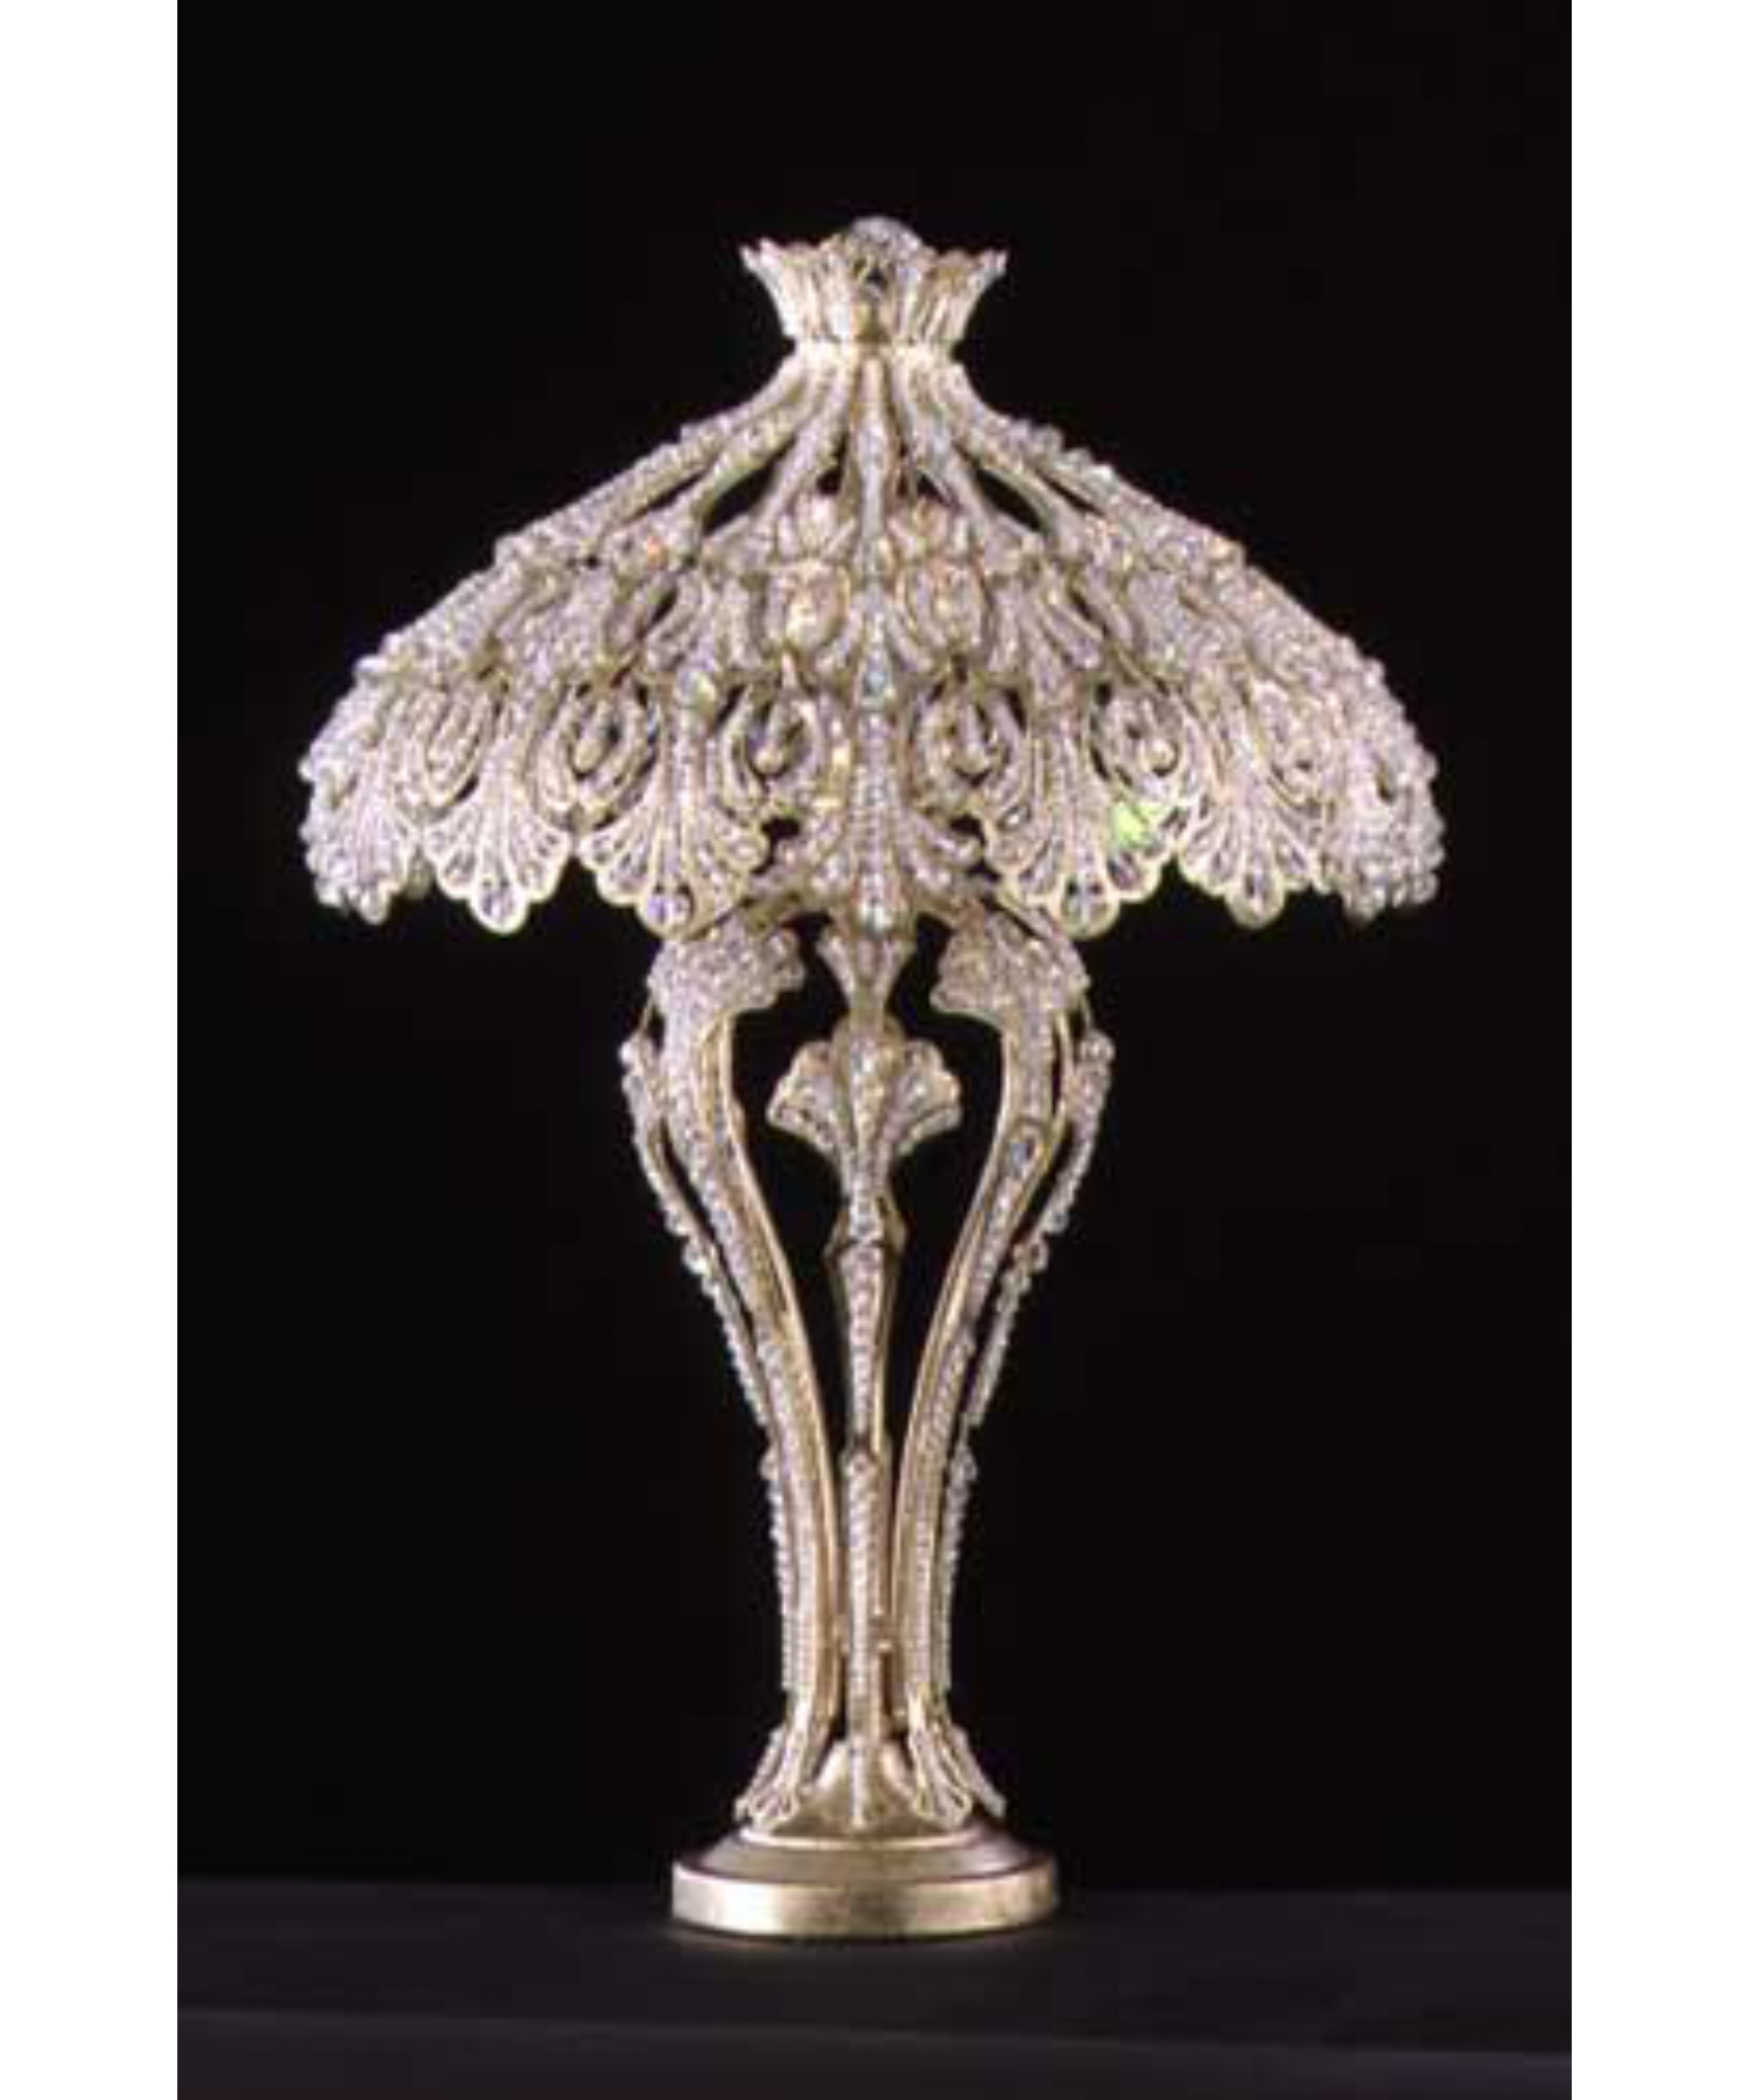 Glass Chandelier Table Lamp Best Of Table Lamp Inspiration Pertaining To Small Crystal Chandelier Table Lamps (Image 13 of 25)